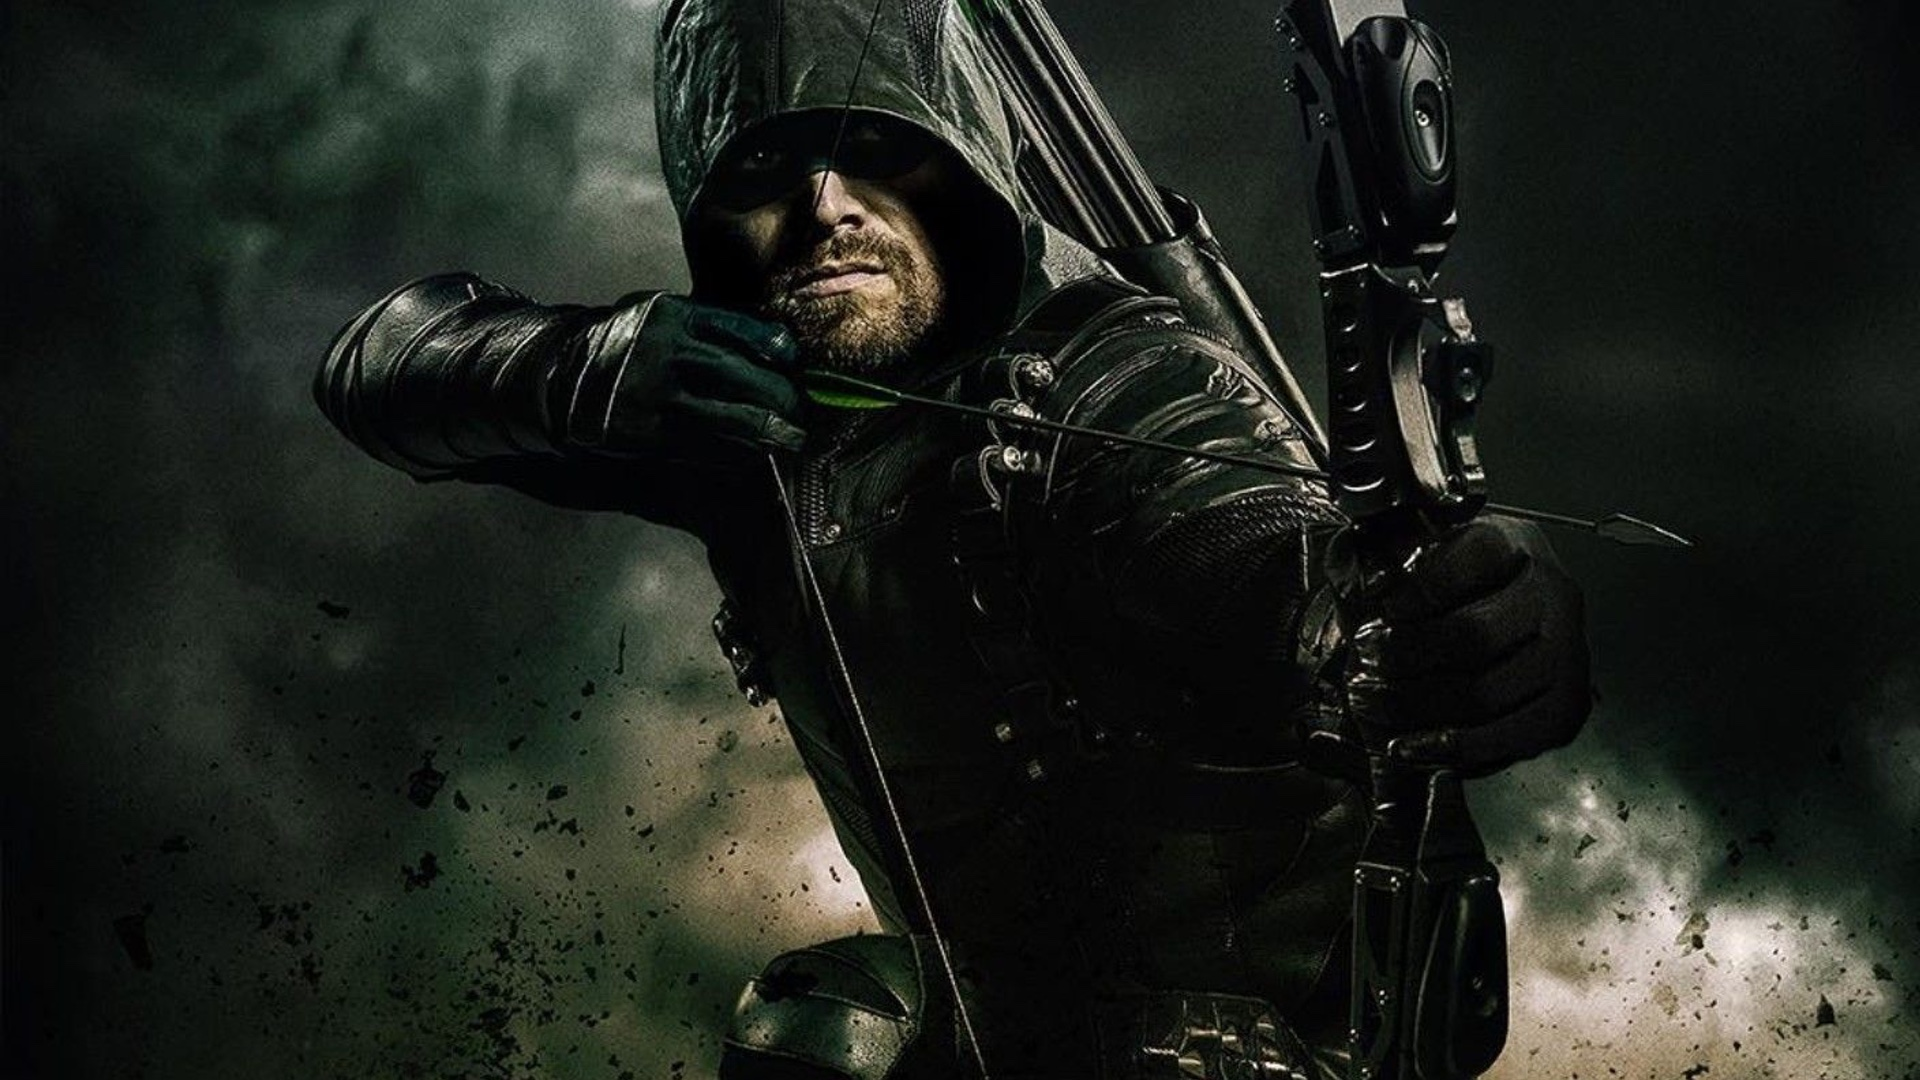 Arrow Season 7 Episode 13 Star City Slayer The CW